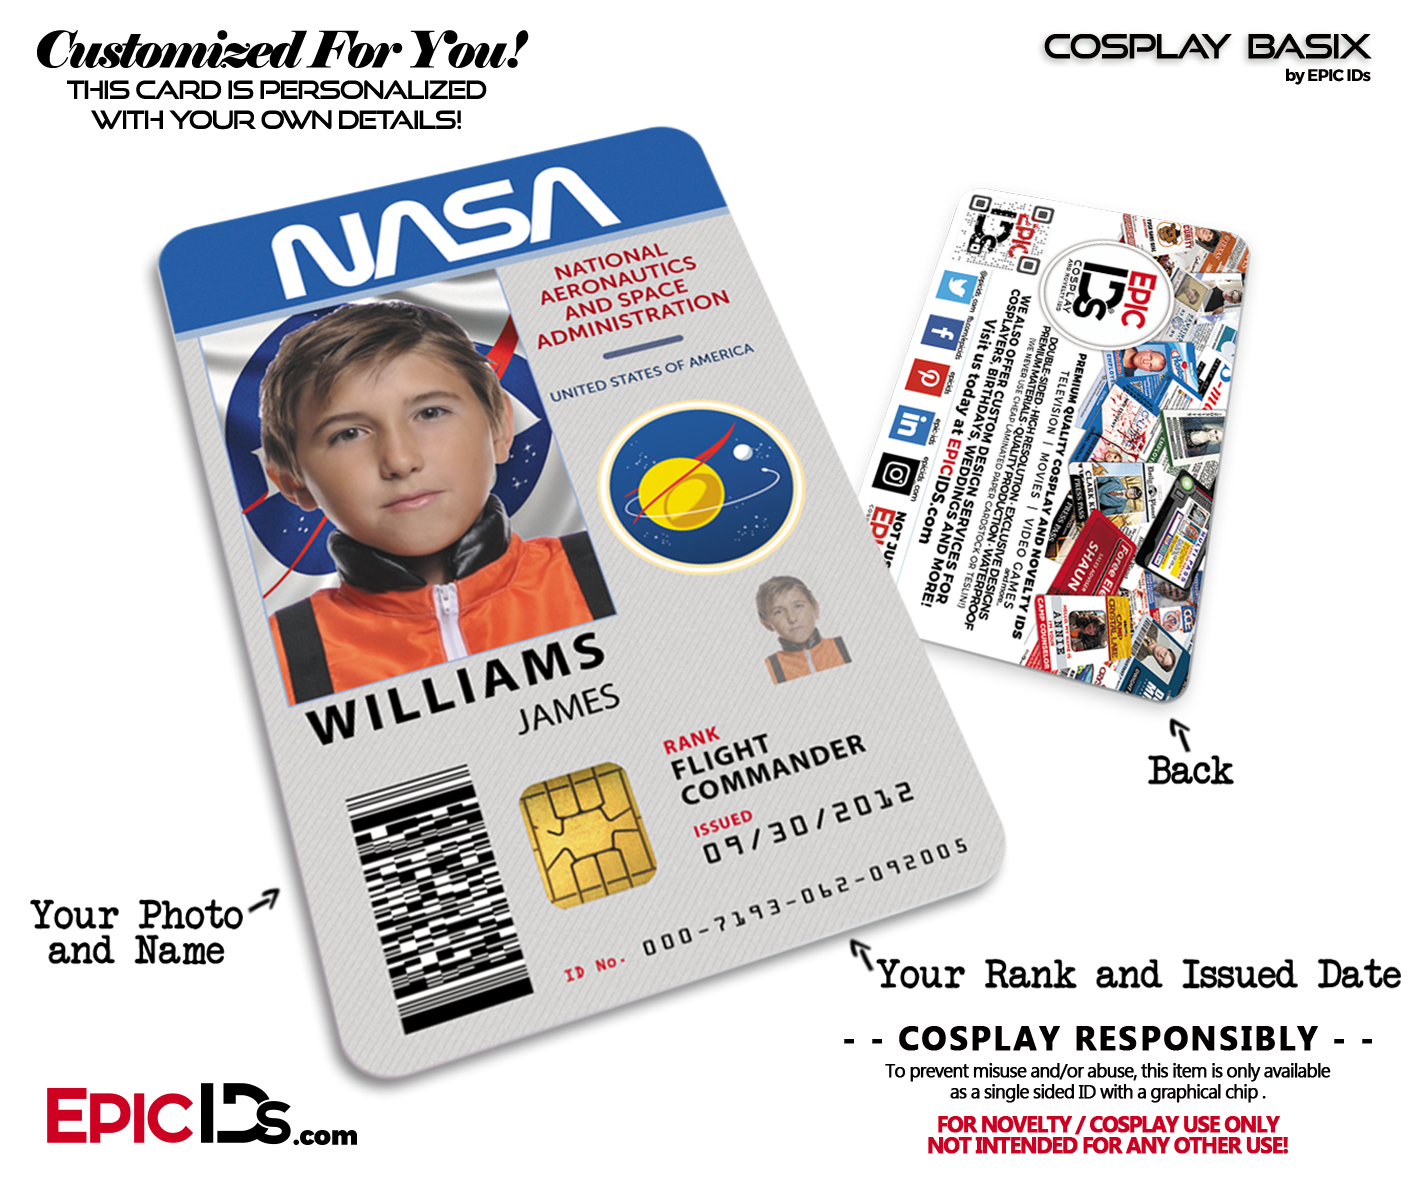 NASA Astronaut Themed Cosplay Access ID Badge - Epic IDs